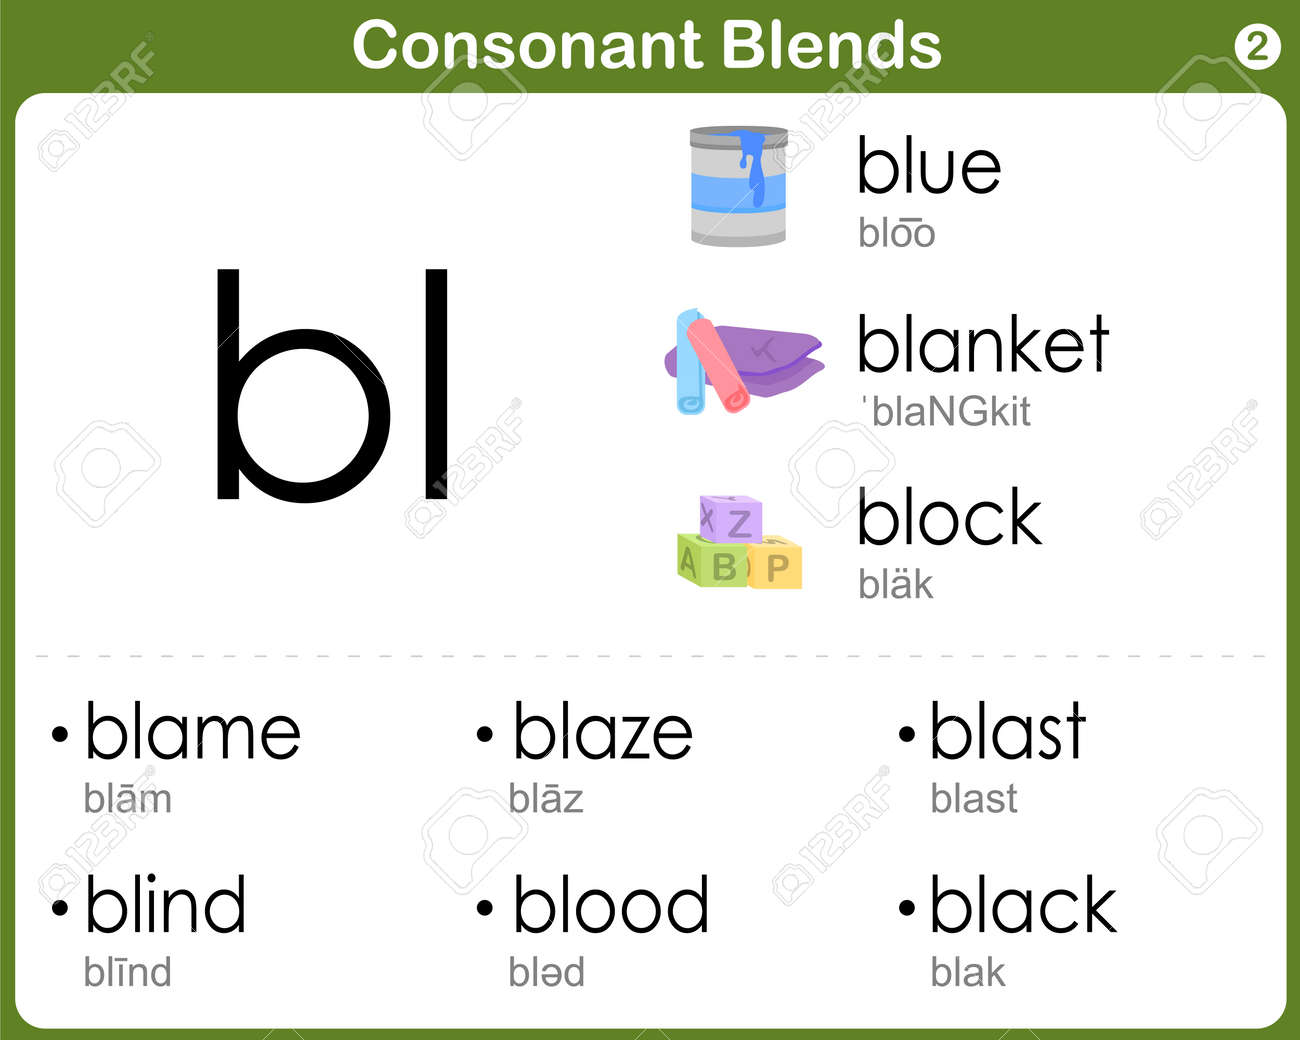 Worksheet Consonant Blends Worksheets For Kindergarten consonant blends worksheet for kids royalty free cliparts vectors stock vector 36646107